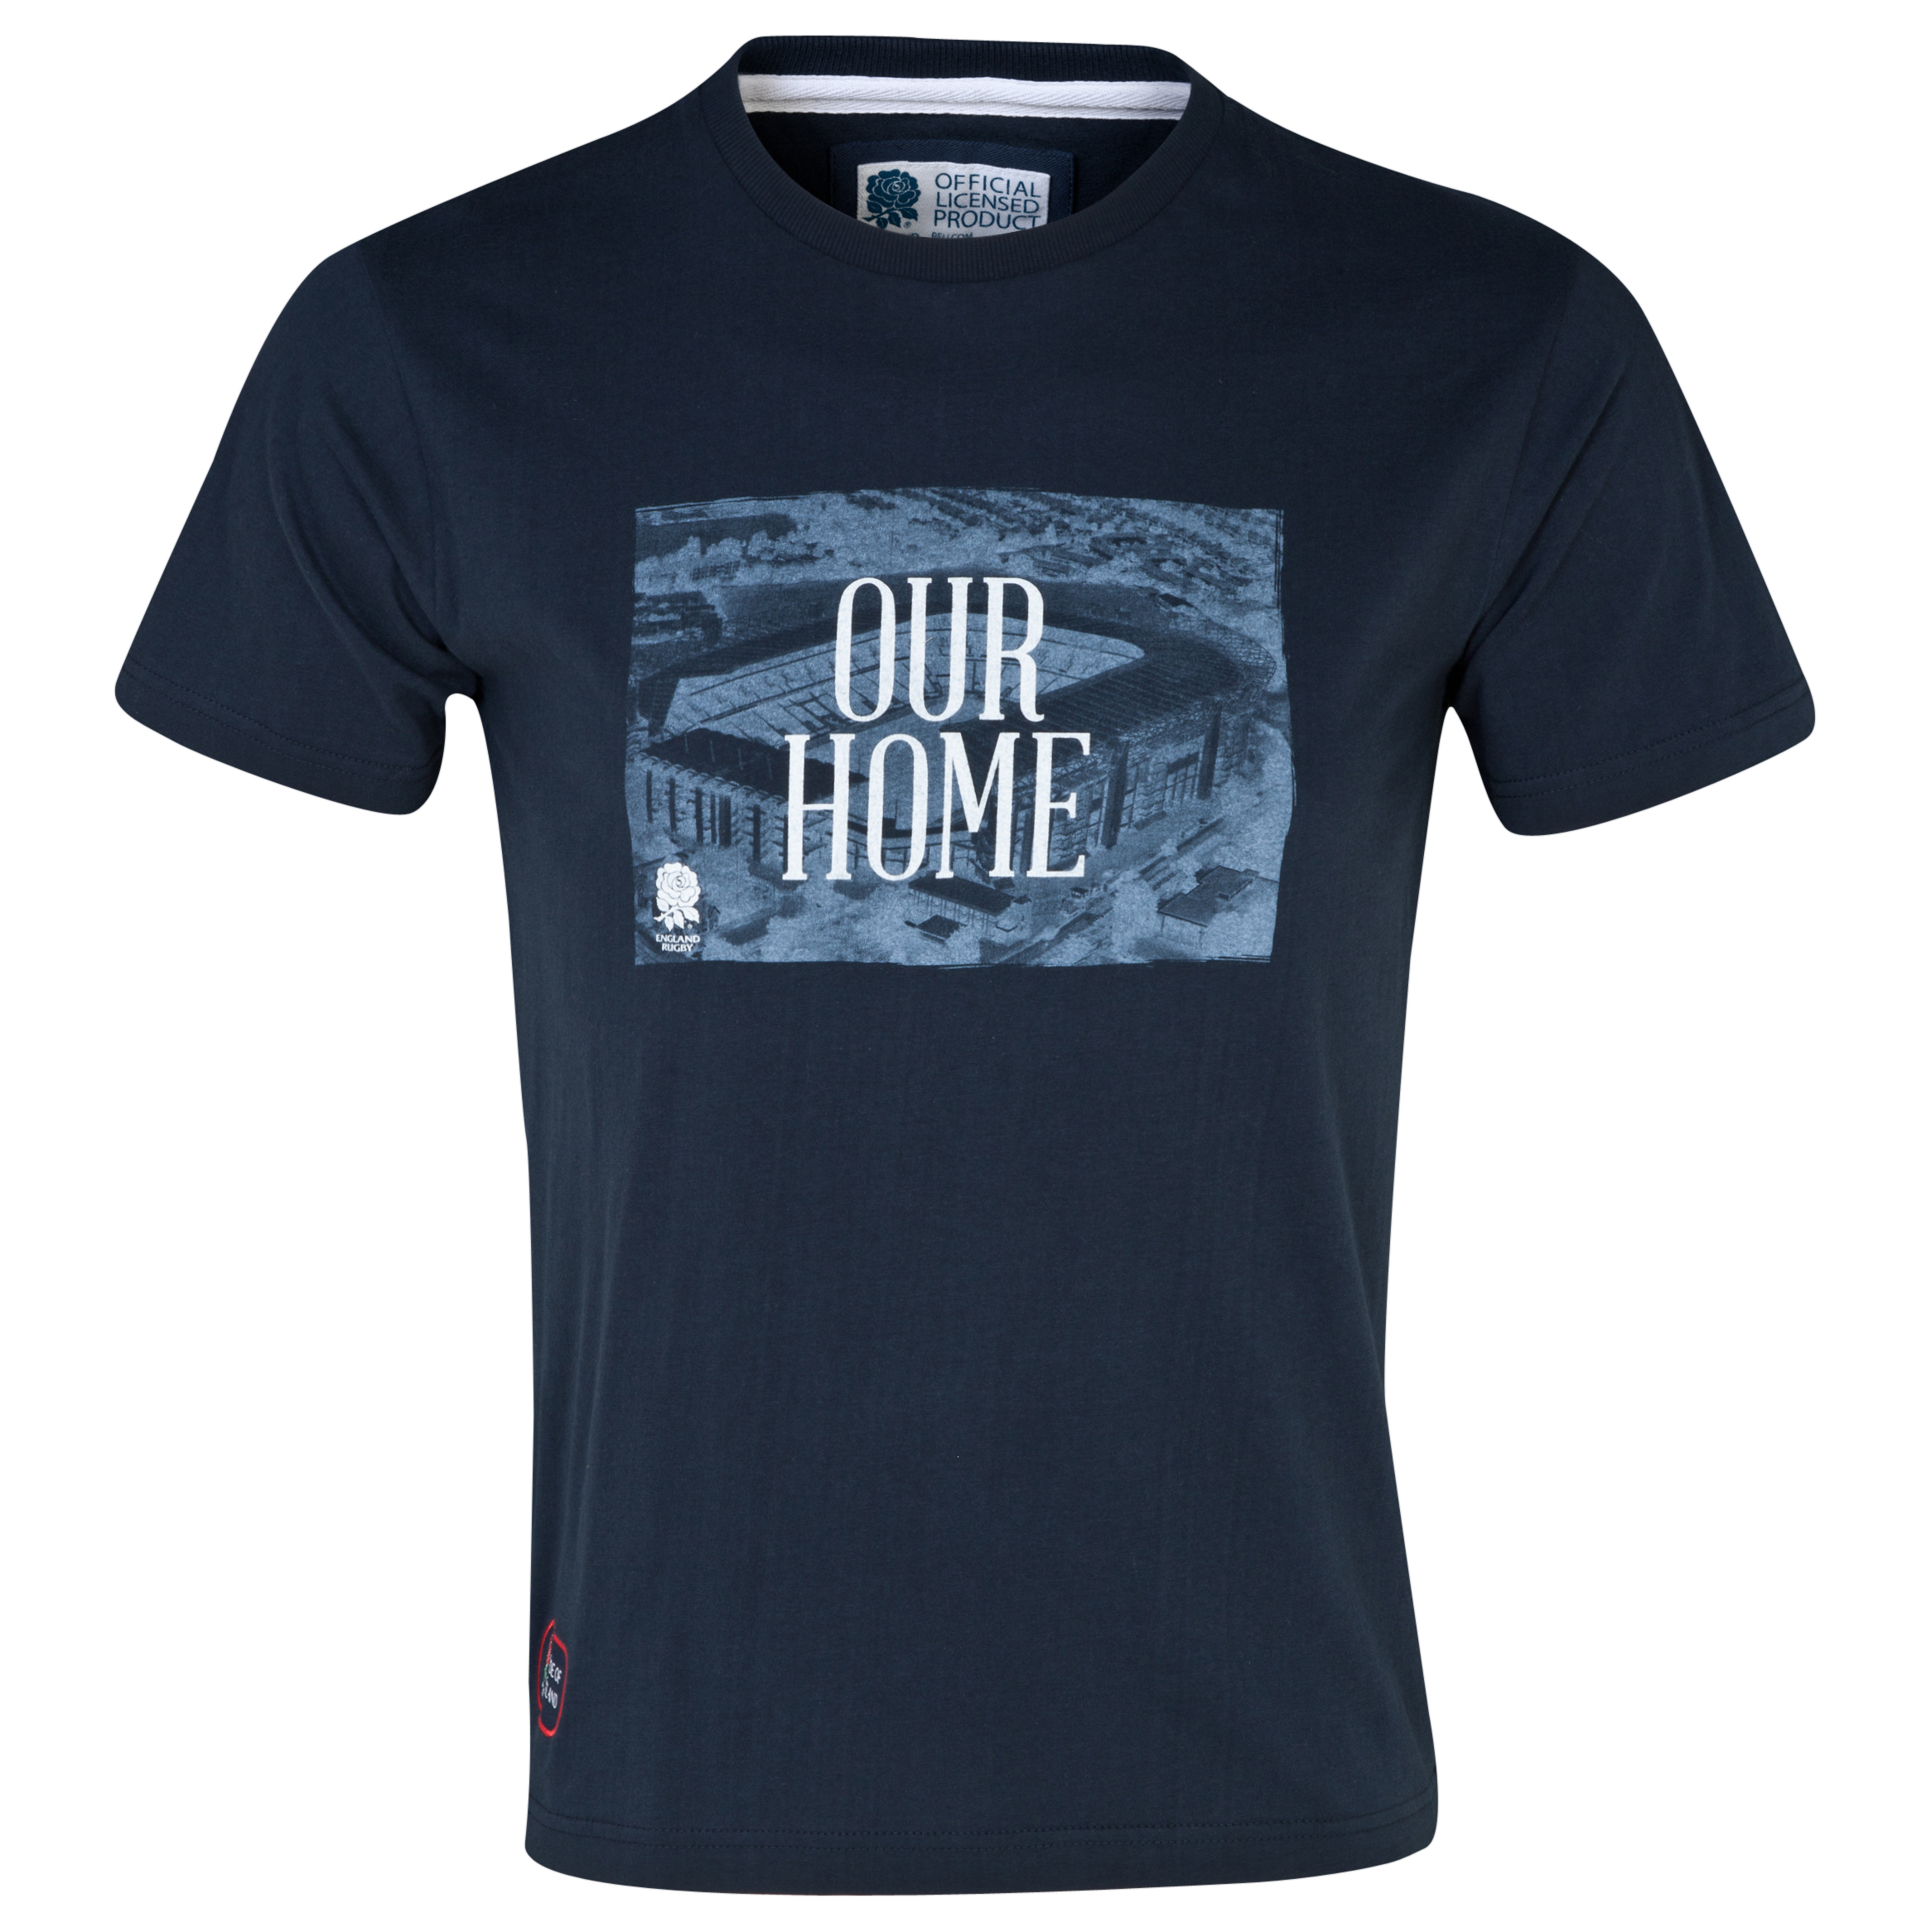 England Rugby Classics Collection Our Home T-Shirt Navy